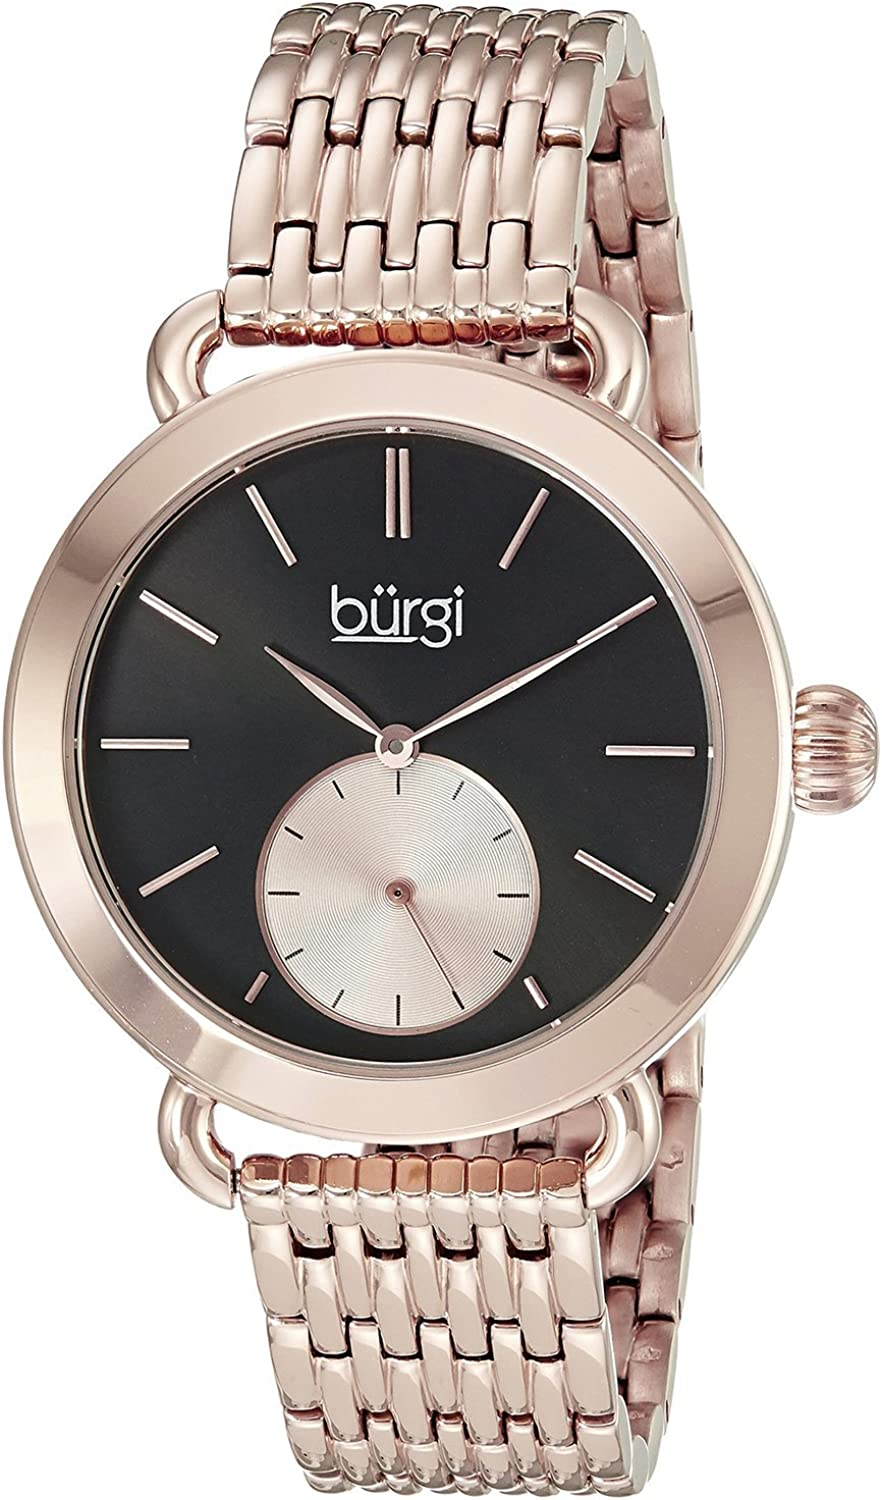 [バージ]Burgi 腕時計 Round Black Dial Two Hand Quartz Stainless Steel Bracelet Watch BUR153RG レディース [並行輸入品]